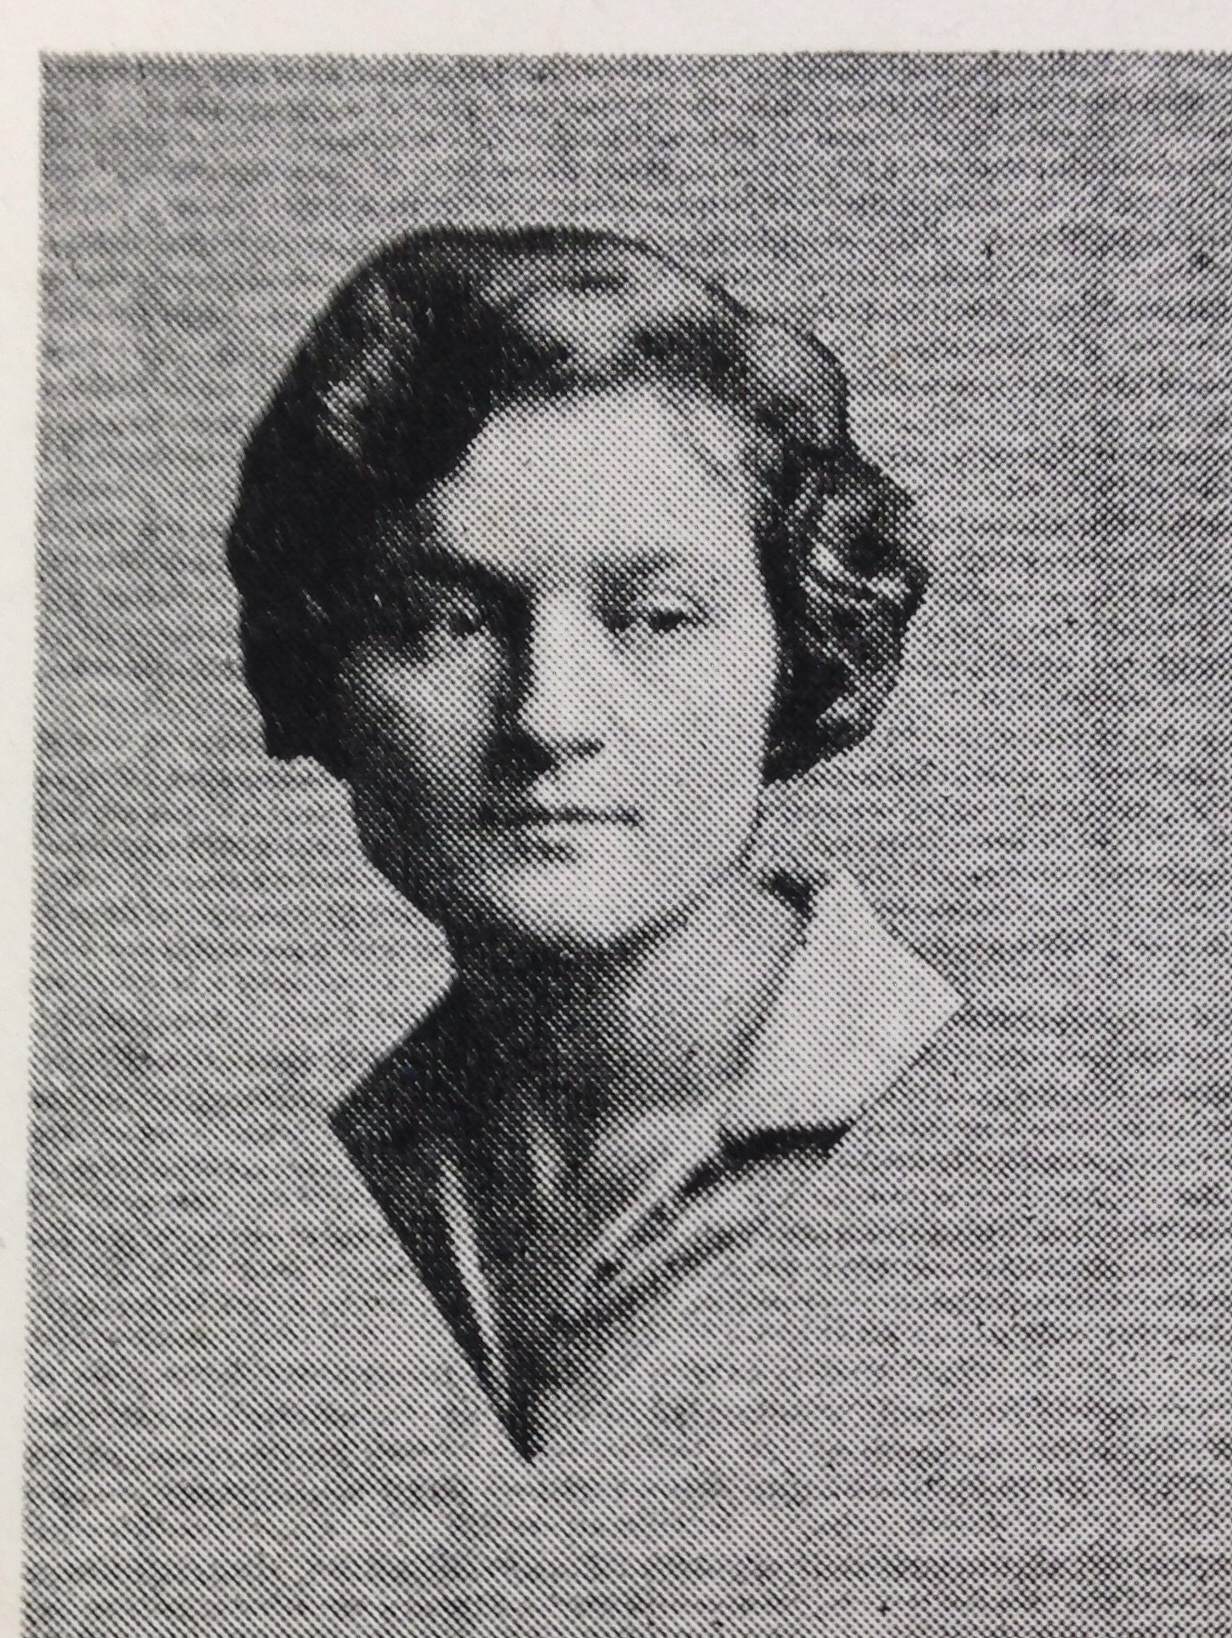 AGNES BARON in the 1928 Antioch College yearbook  Towers . She was on the crew for three different plays when she was a student. (Antioch College photo.)